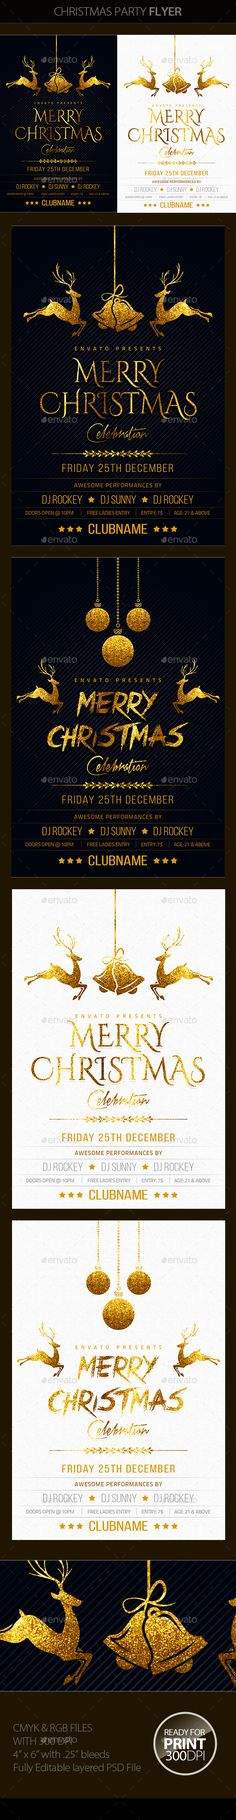 Merry Christmas Party Flyer Template PSD #design Download: http://graphicriver.net/item/christmas-party/13687084?ref=ksioks